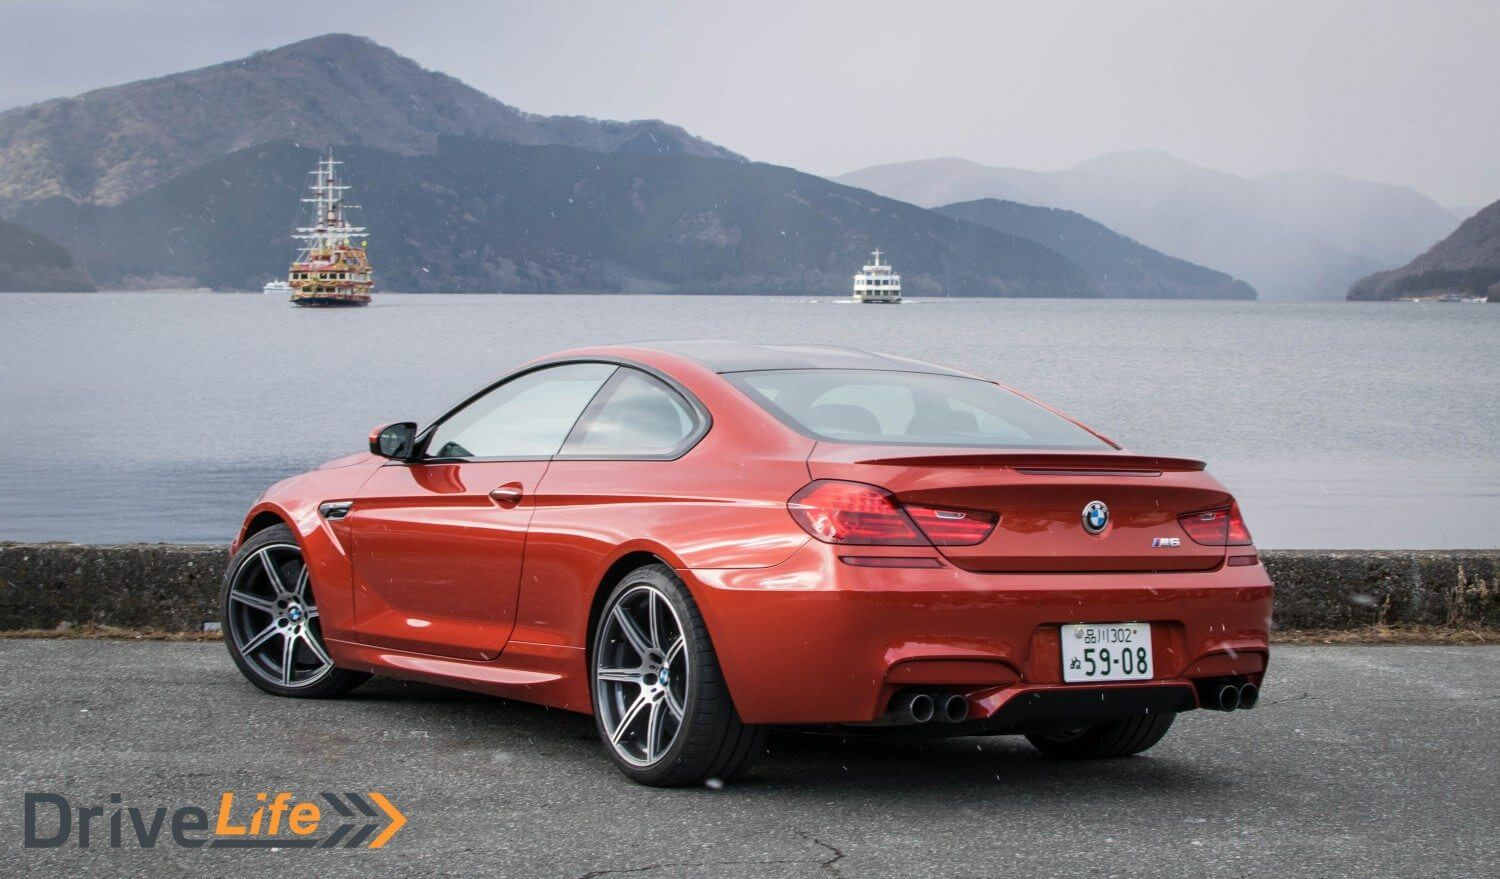 drive-life-nz-car-review-bmw-m6-competition-2016-07